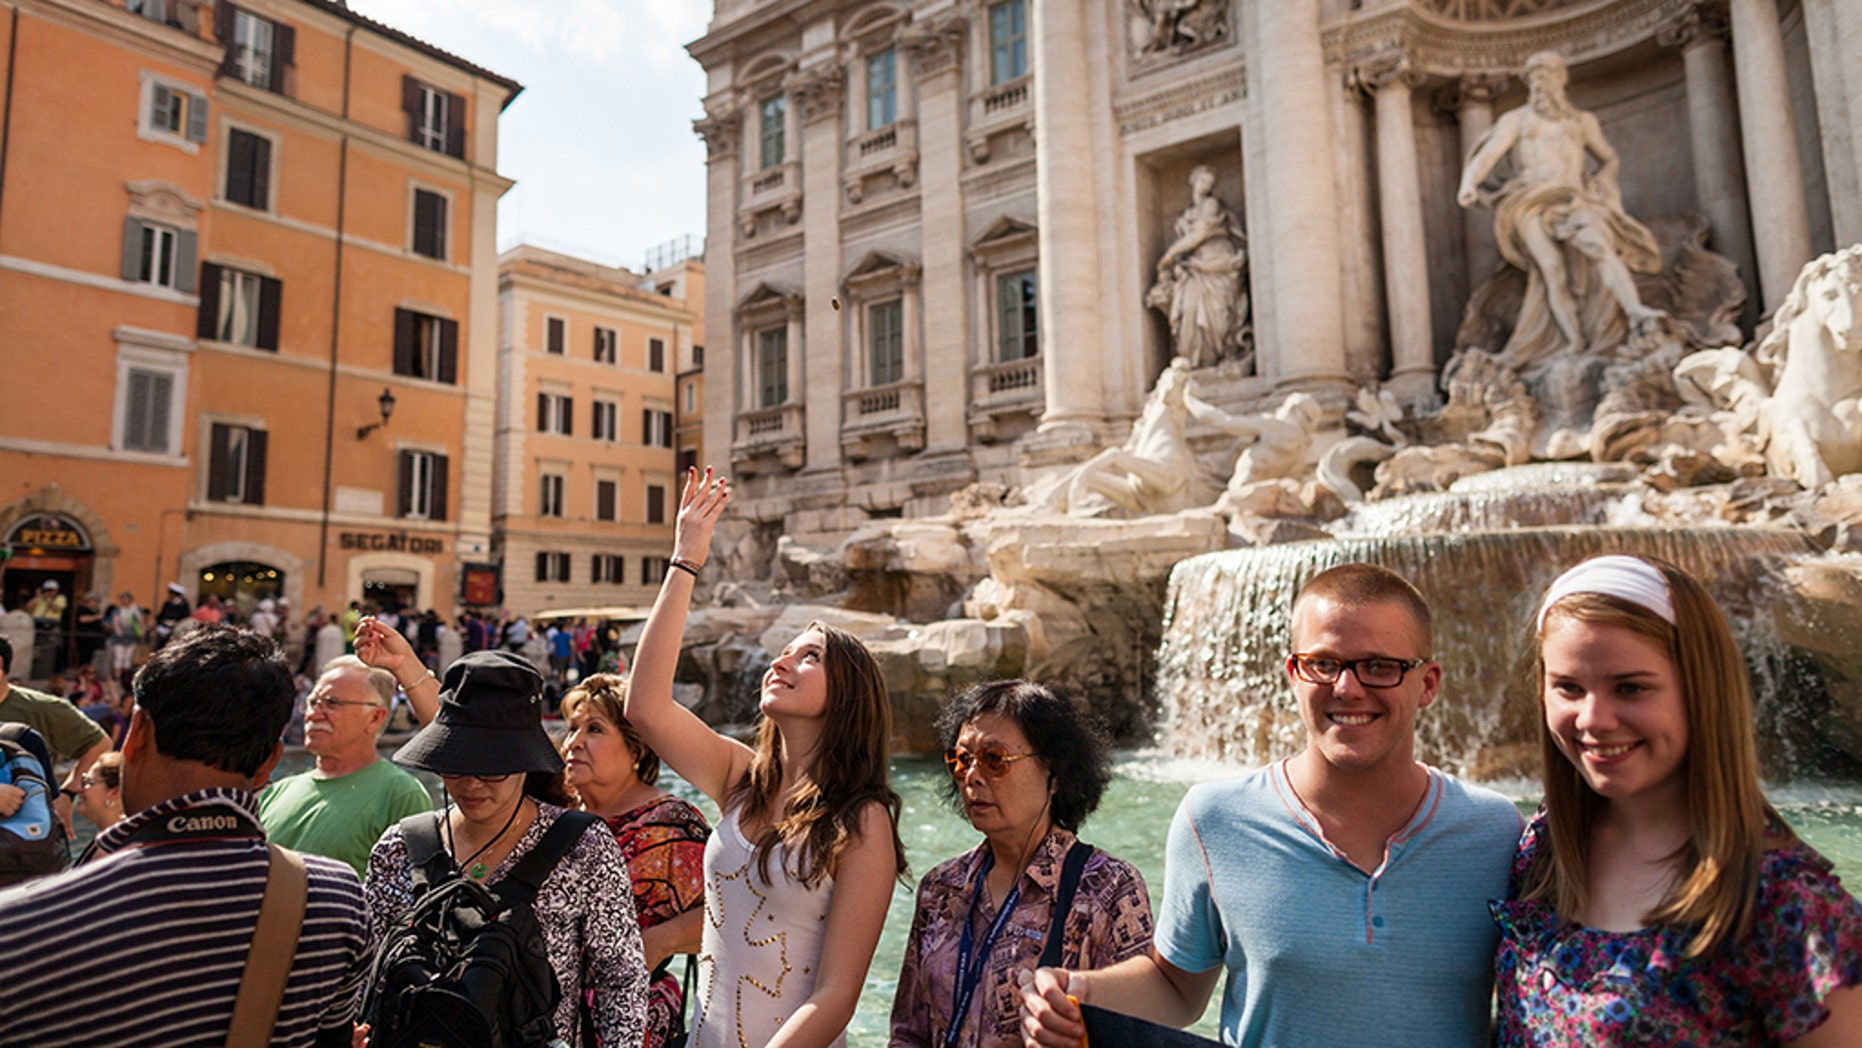 The nearly $1.7 million in coins tossed by tourists in the Trevi fountain in Rome every year. (istock)